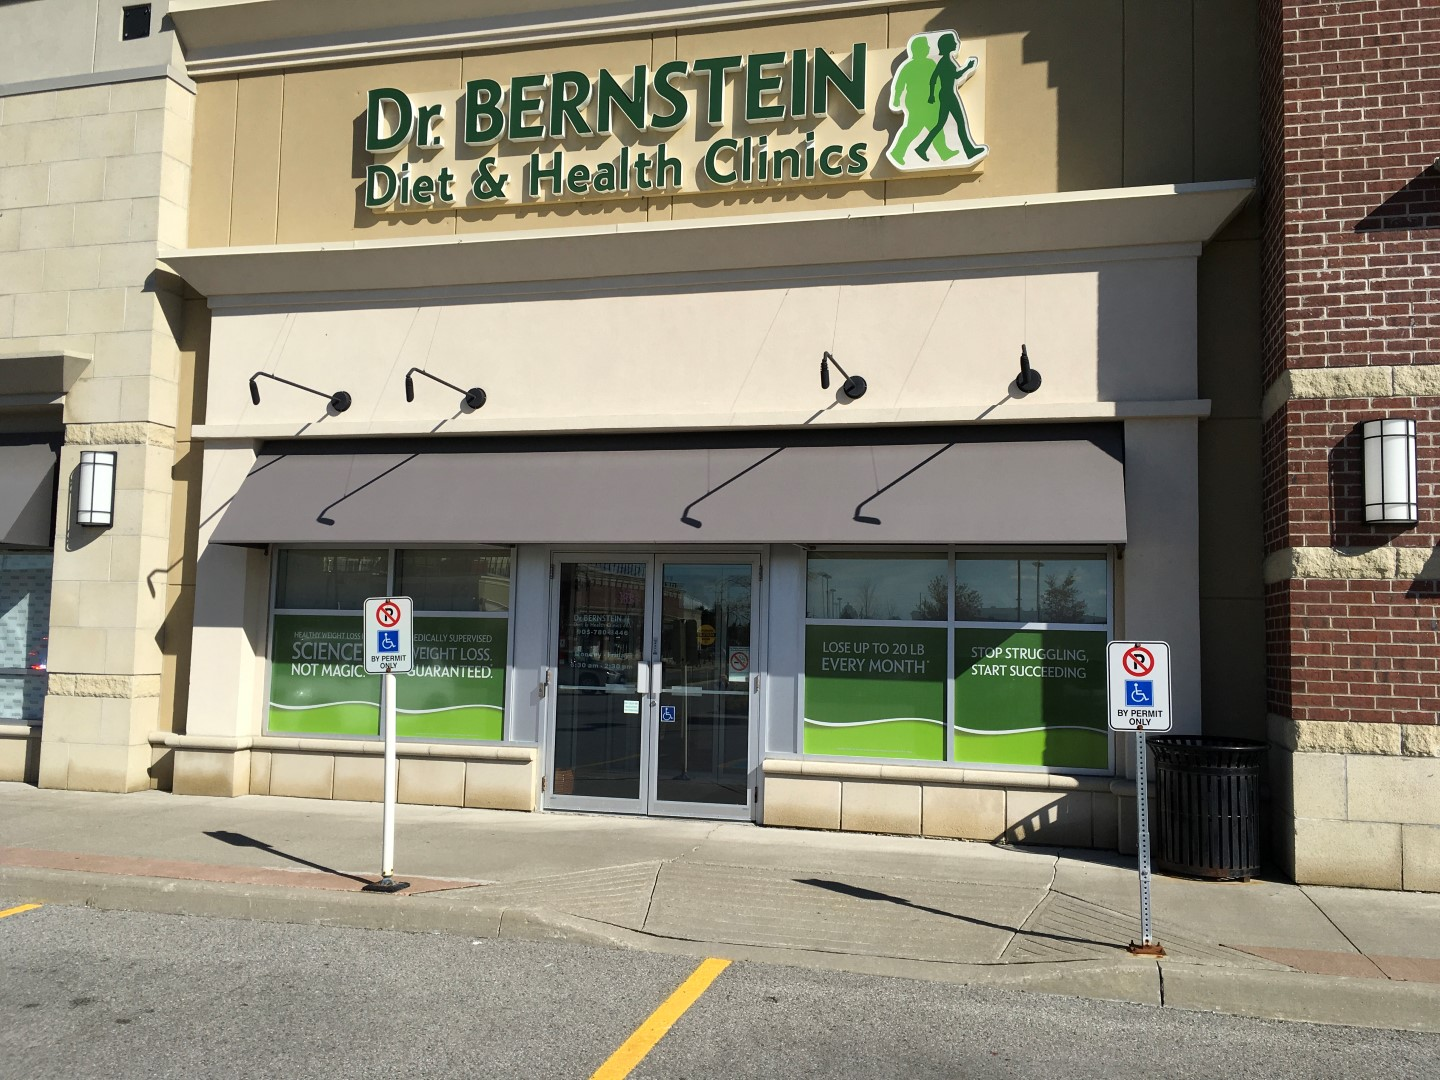 Dr. Bernstein Weight Loss & Diet Clinic, Elgin Mills - Richmond Hill, Ontario